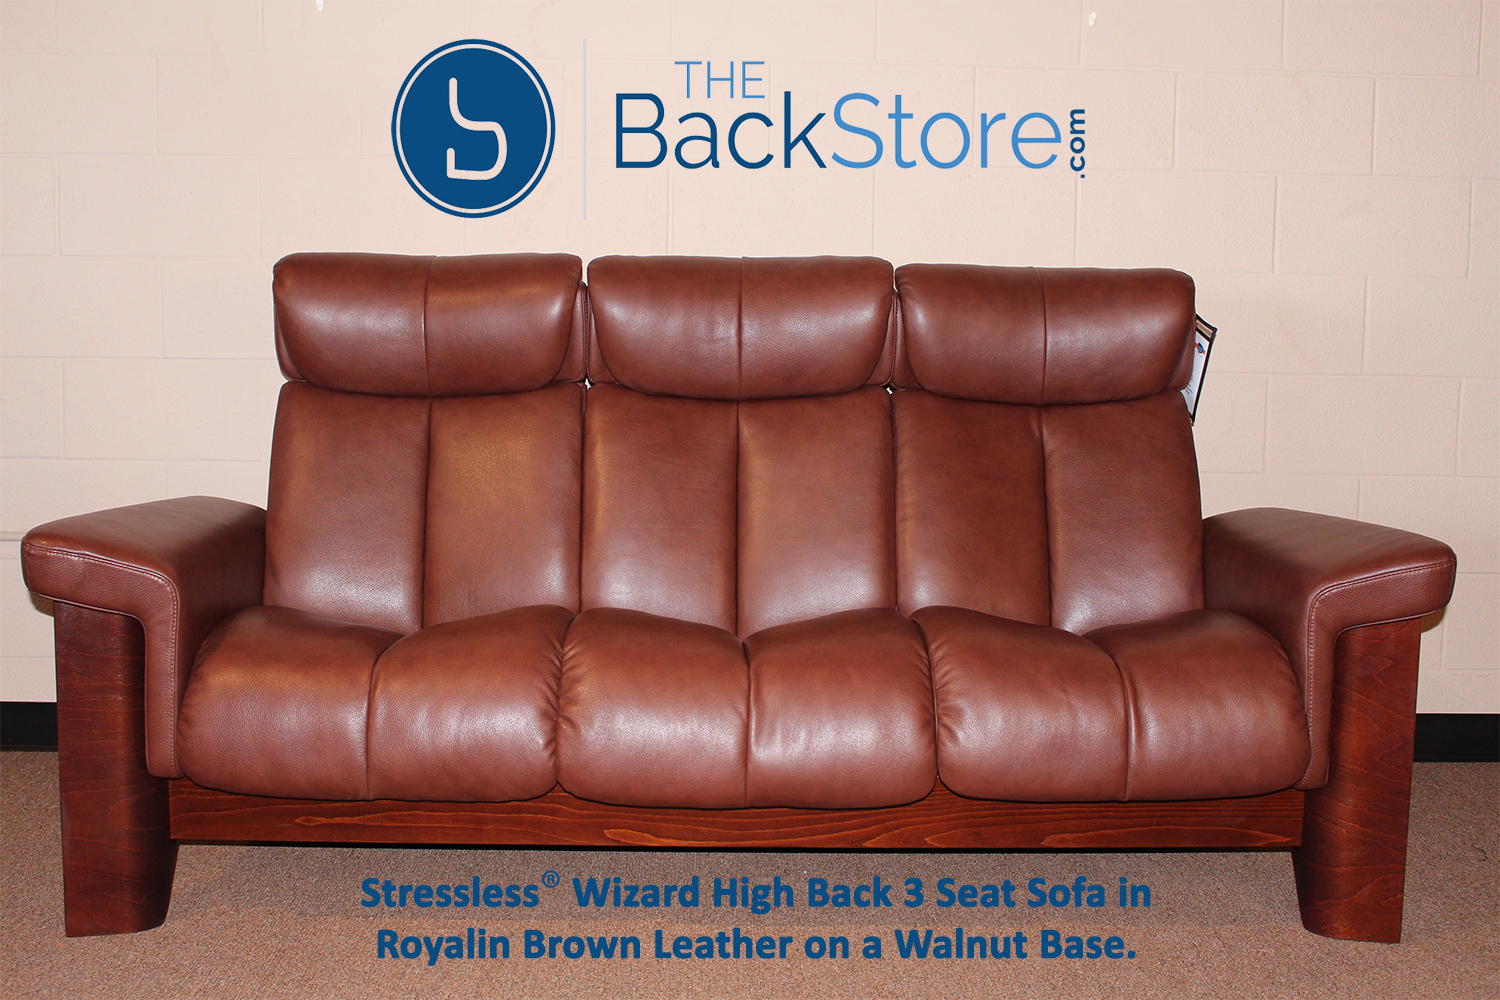 Stressless Wizard 3 Seat High Back Sofa Royalin Brown Color Leather by  Ekornes